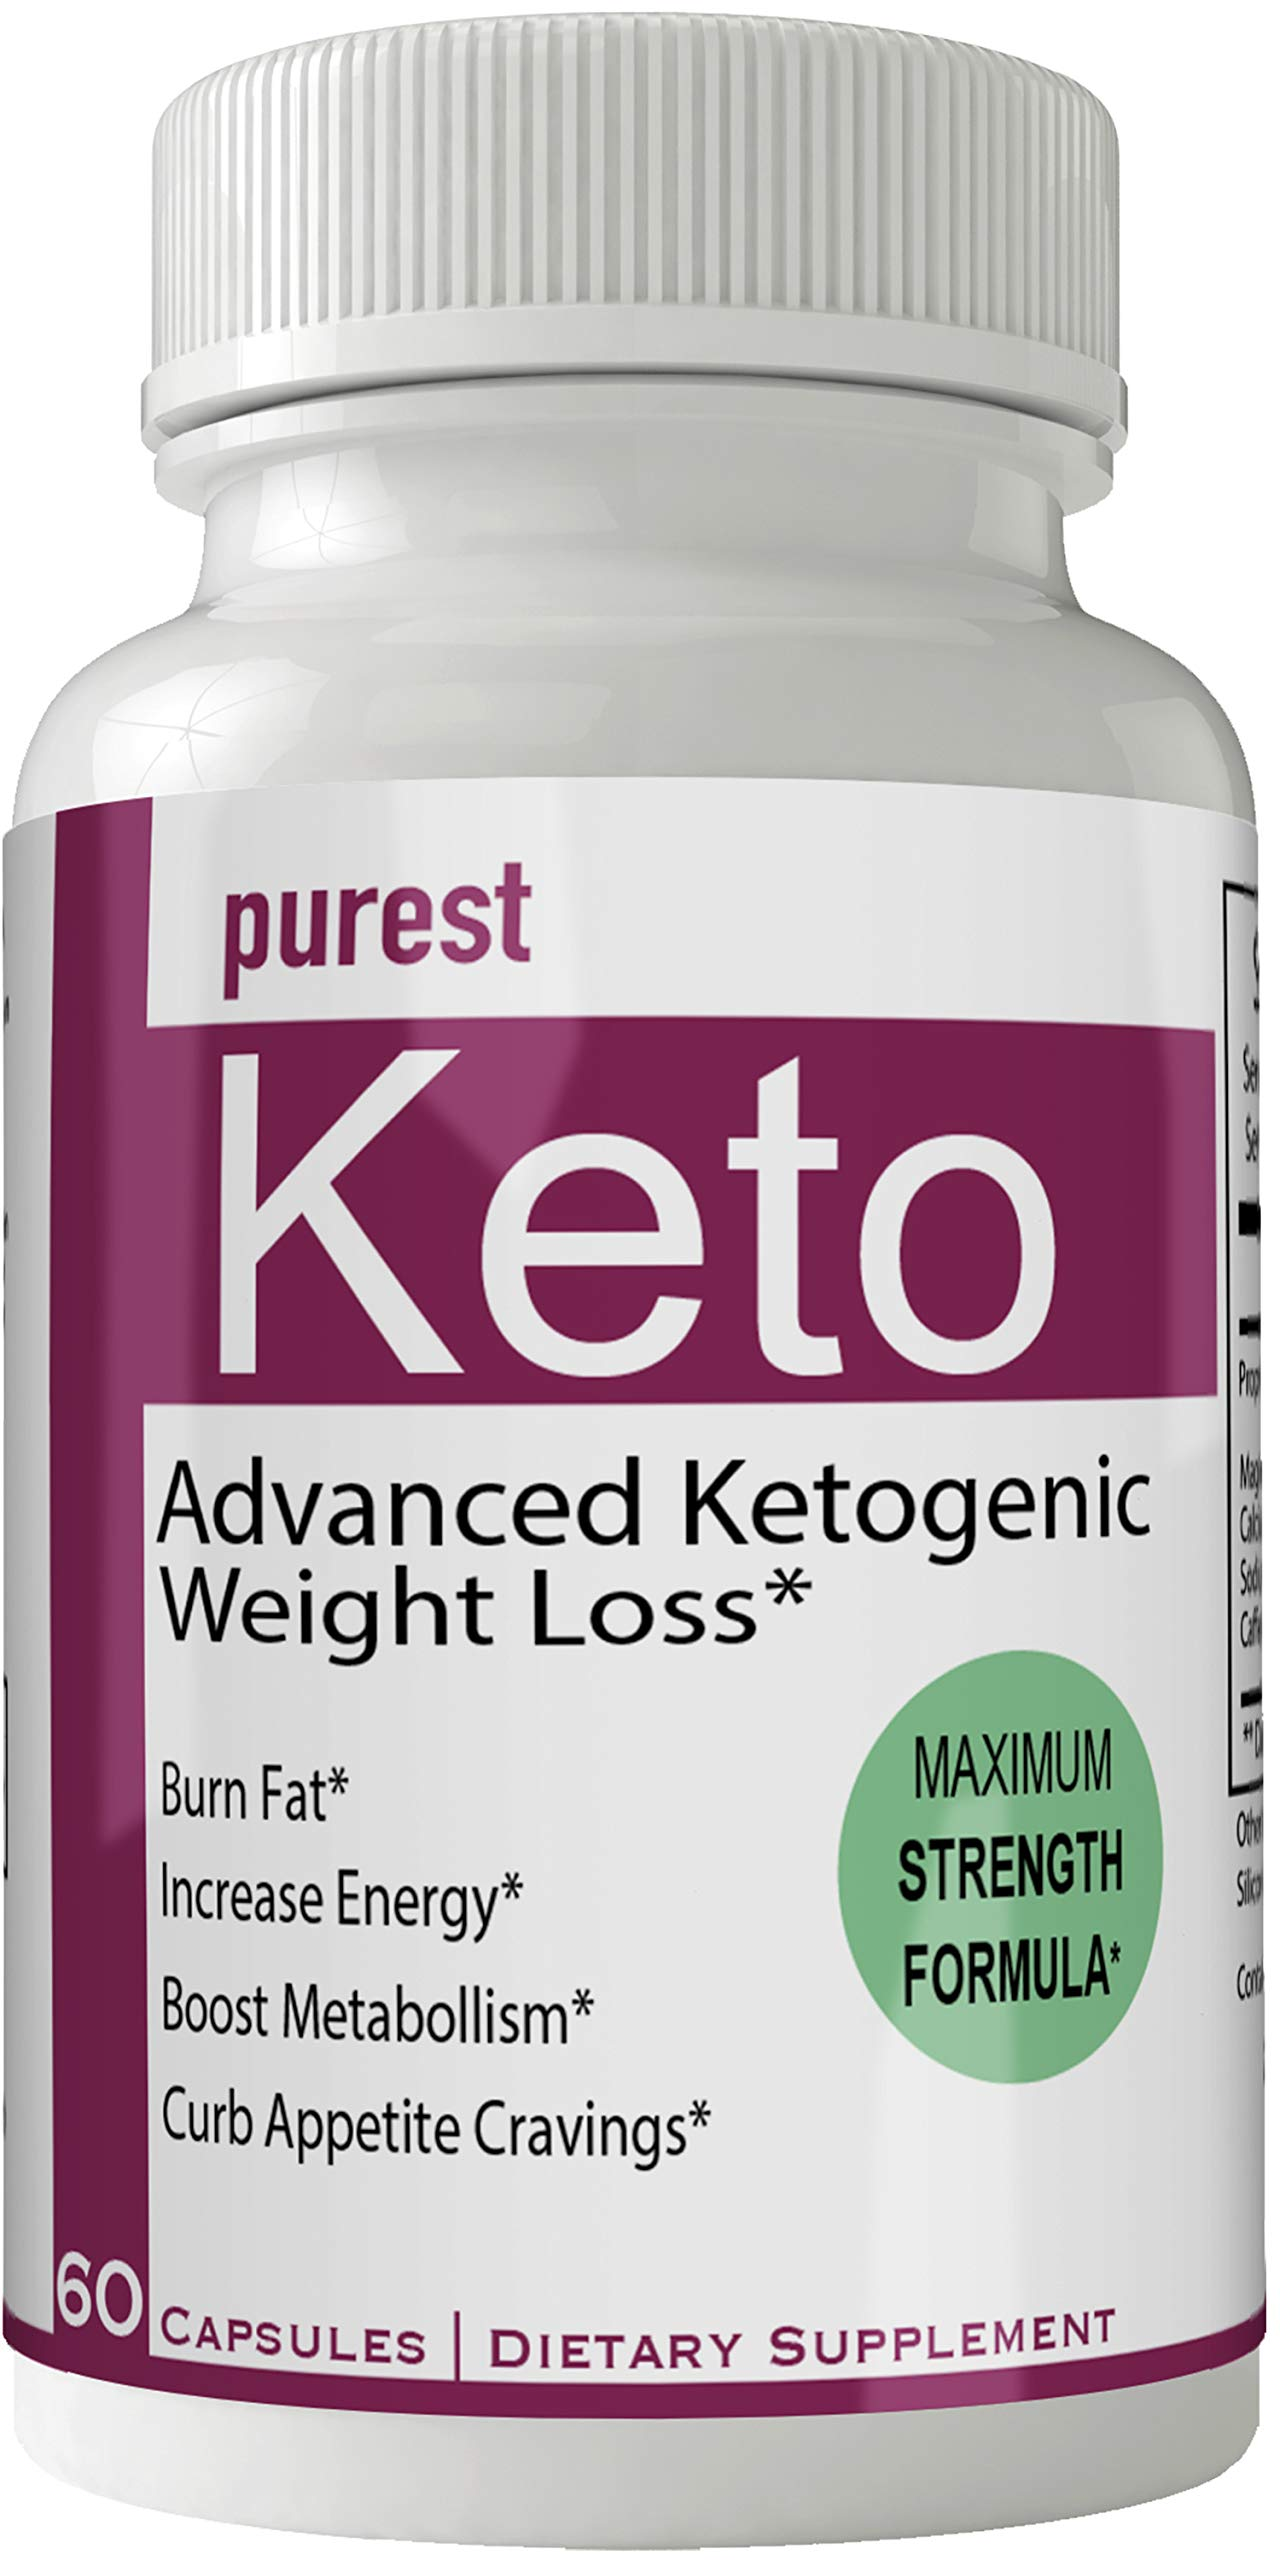 Purest Keto Diet Pills Advance Weight Loss Supplement Appetite Suppressant Natural Ketogenic 800 mg Formula with BHB Salts Ketone Diet Capsules to Boost Metabolism, Energy and Focus